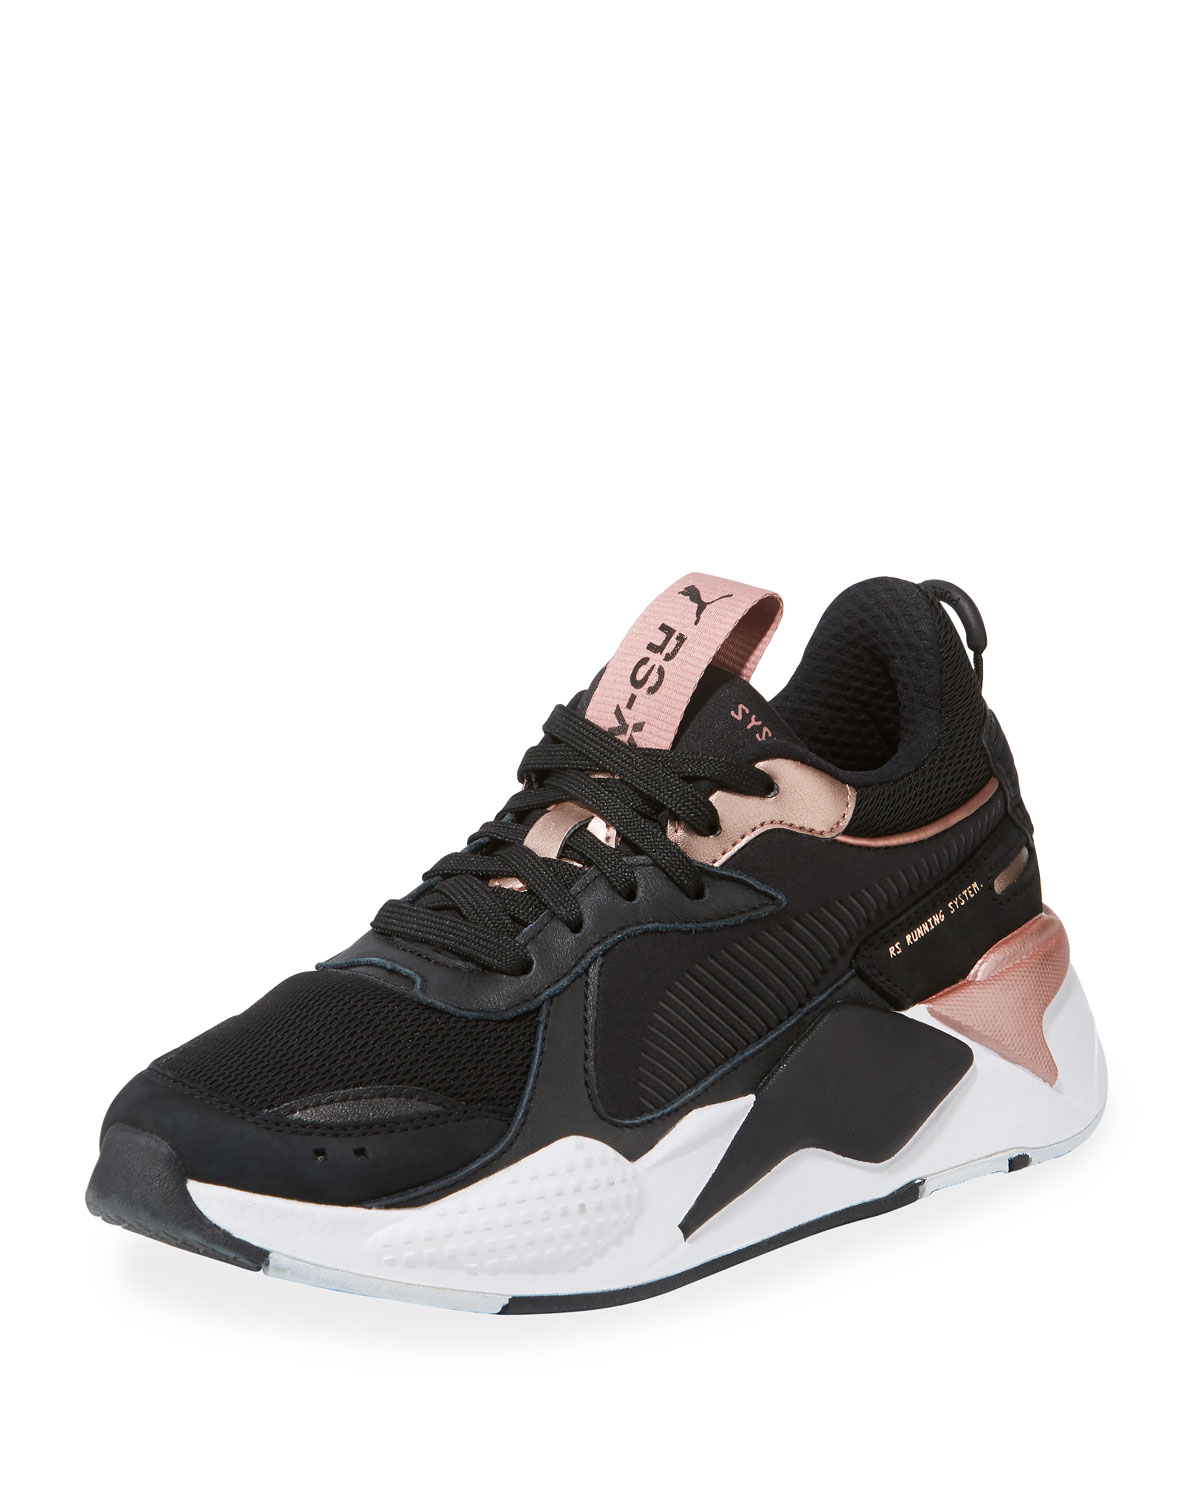 be8660e6ed9d67 Puma RS-X Trophy Running Sneakers